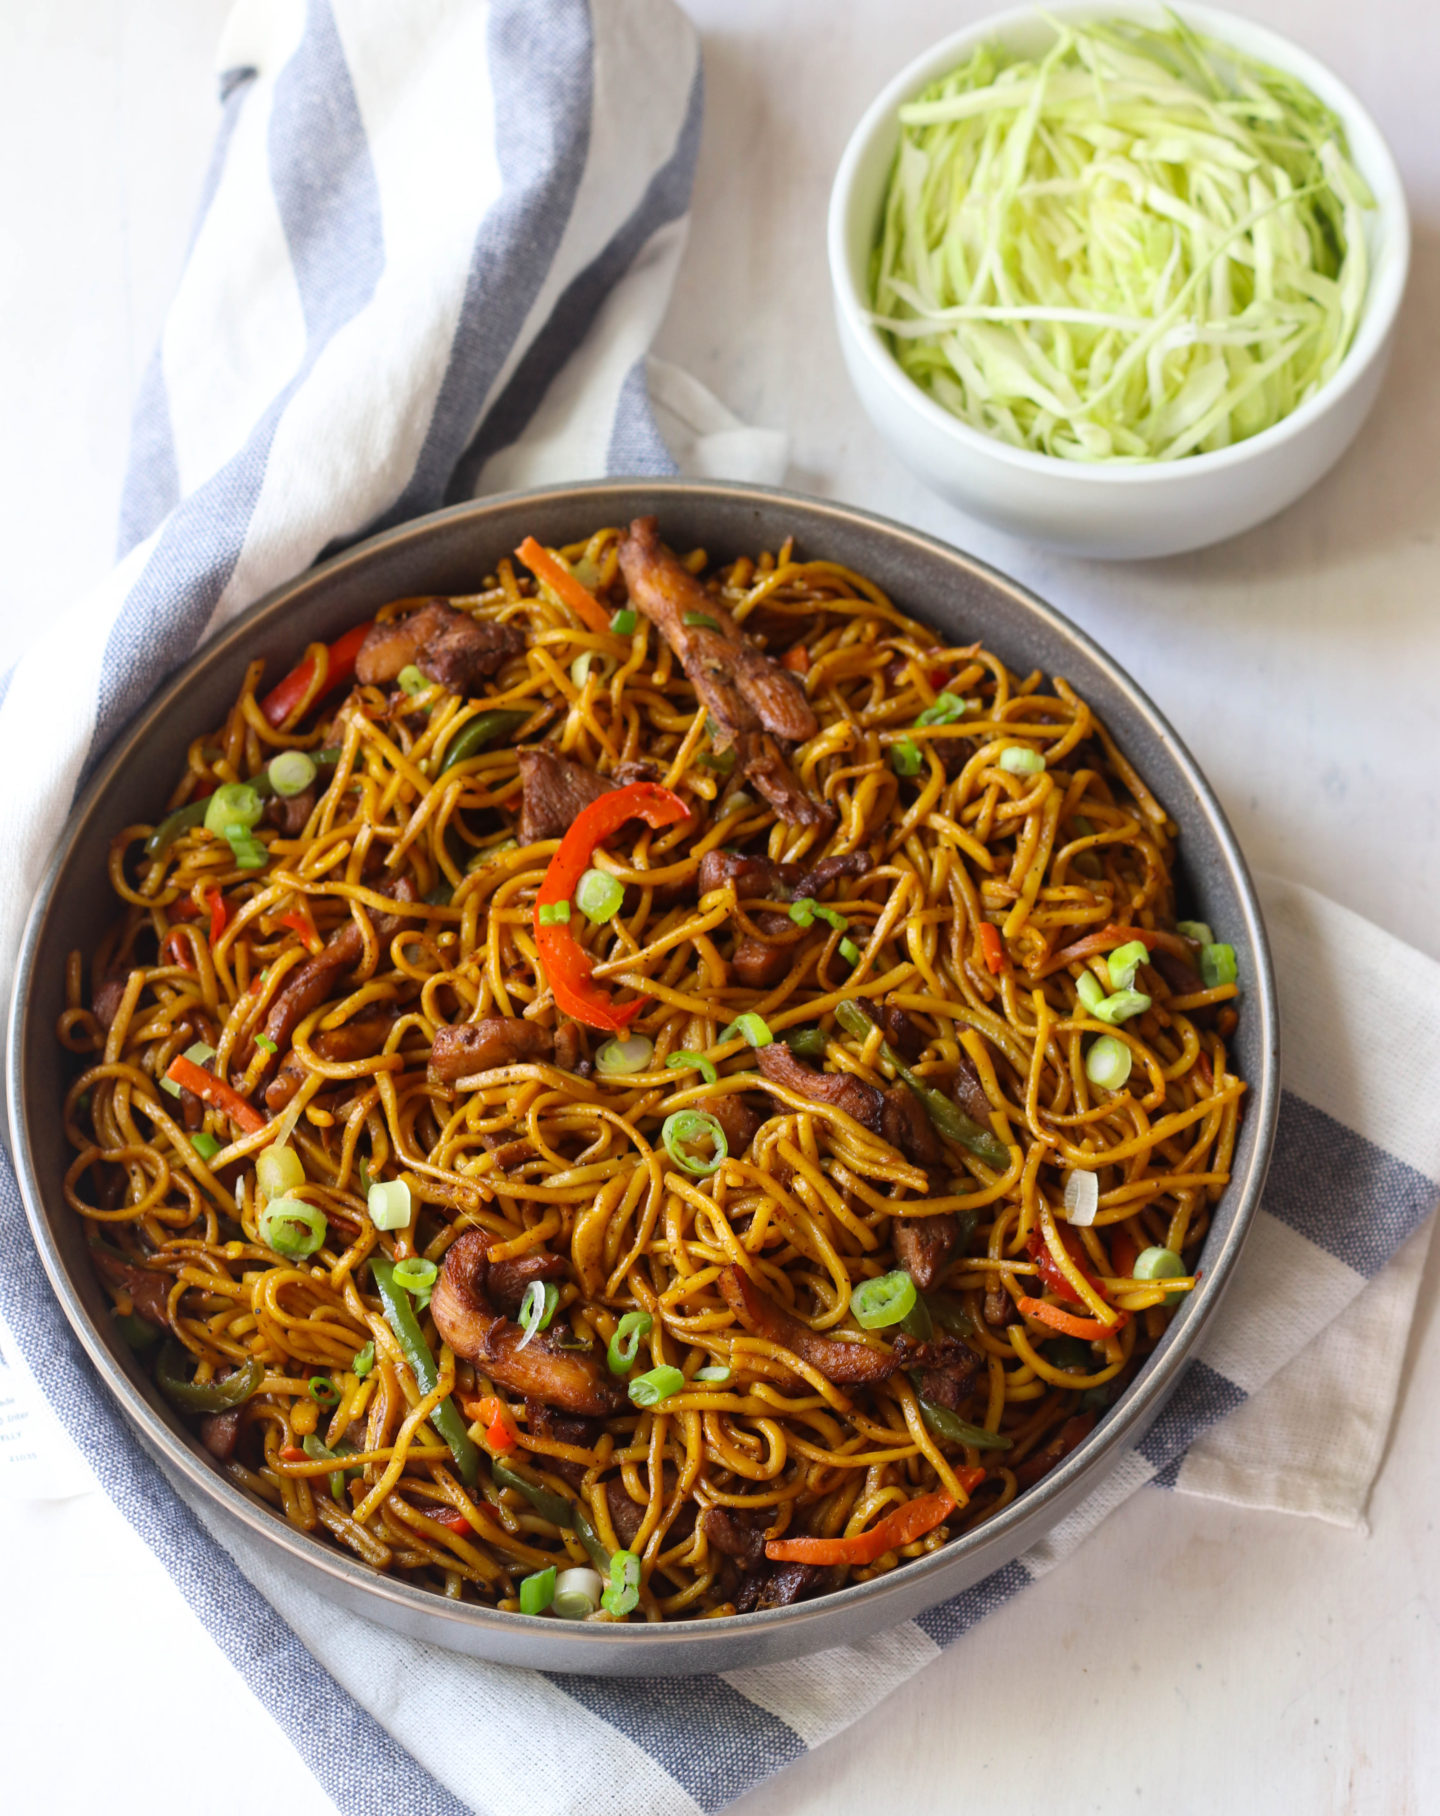 Chicken-Chowmein-1-6-1440x1816.jpg